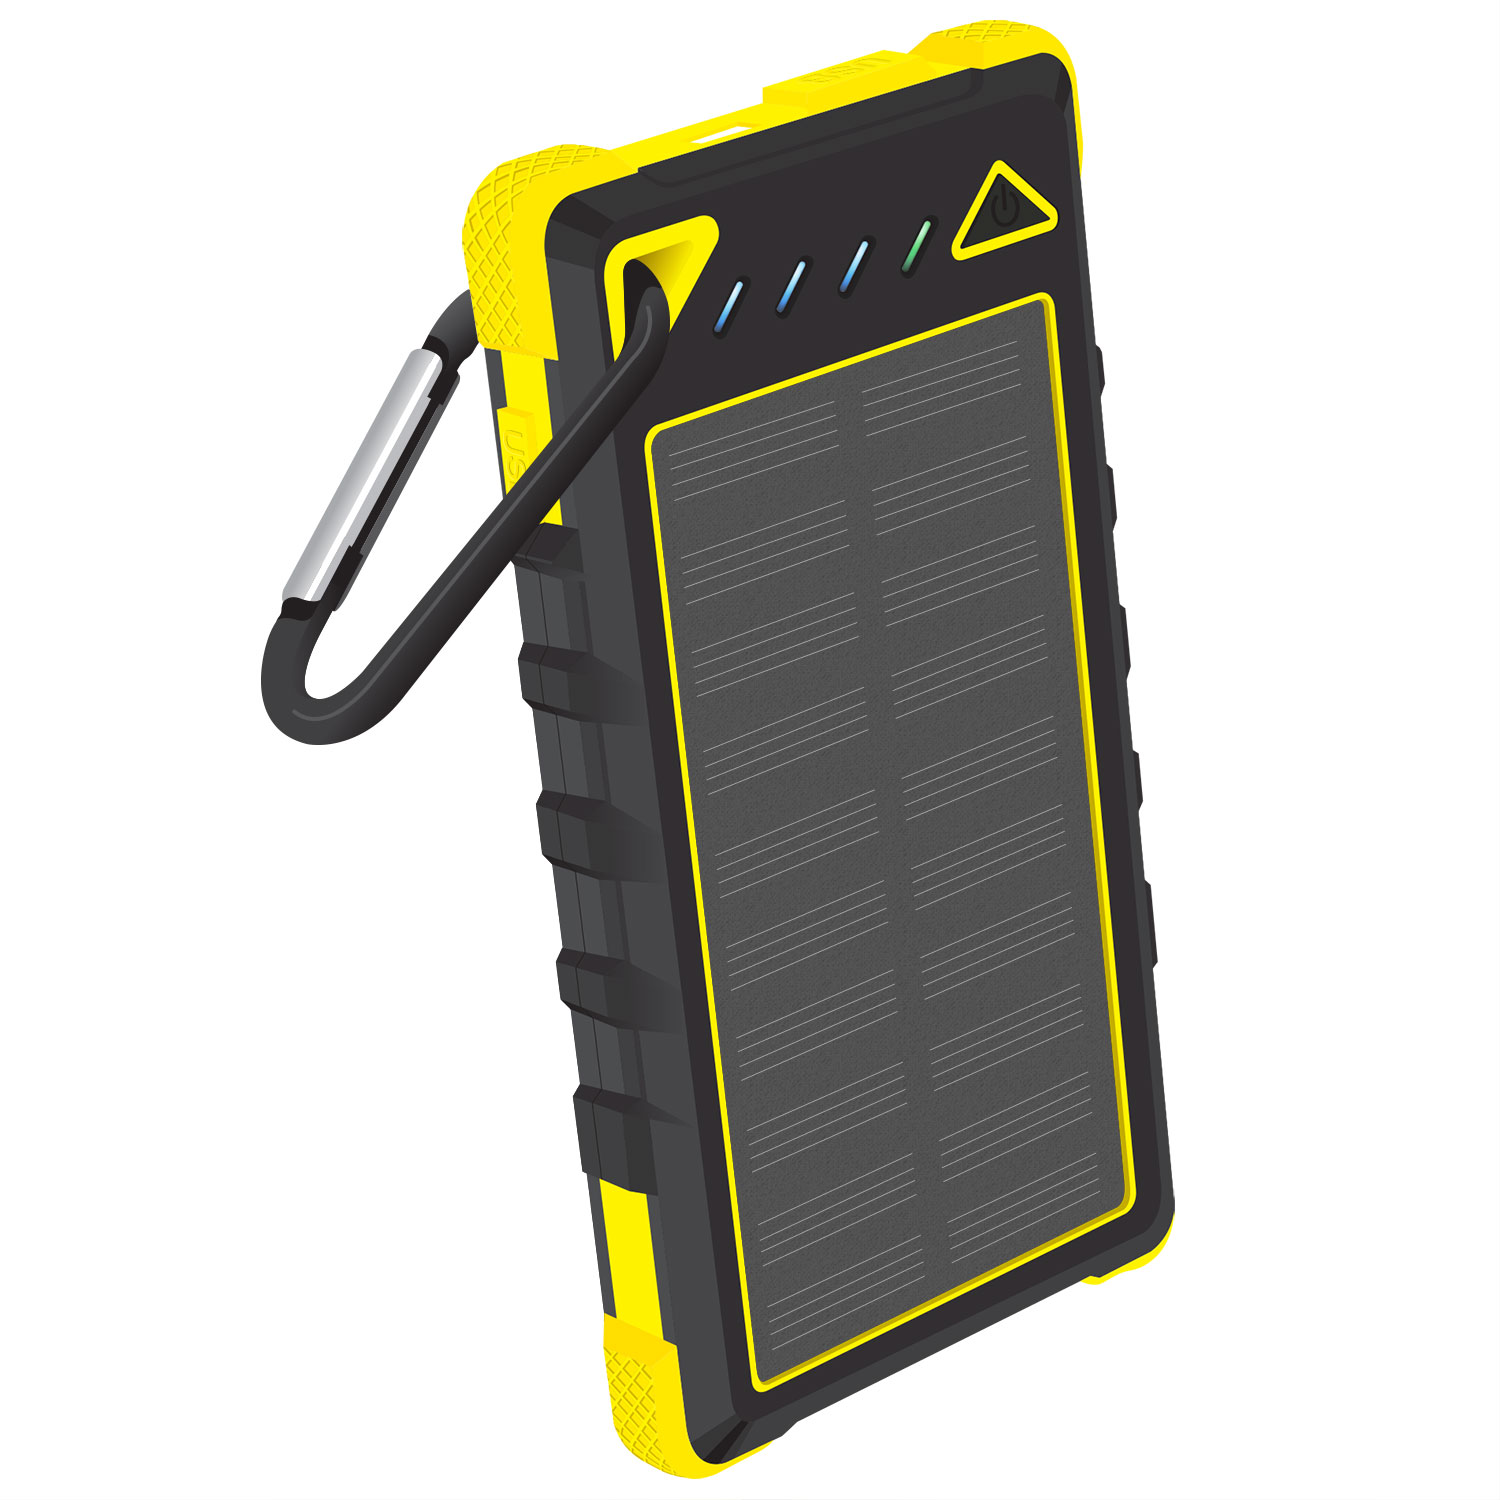 LG G Stylo Solar Powered Portable PowerBank Yellow